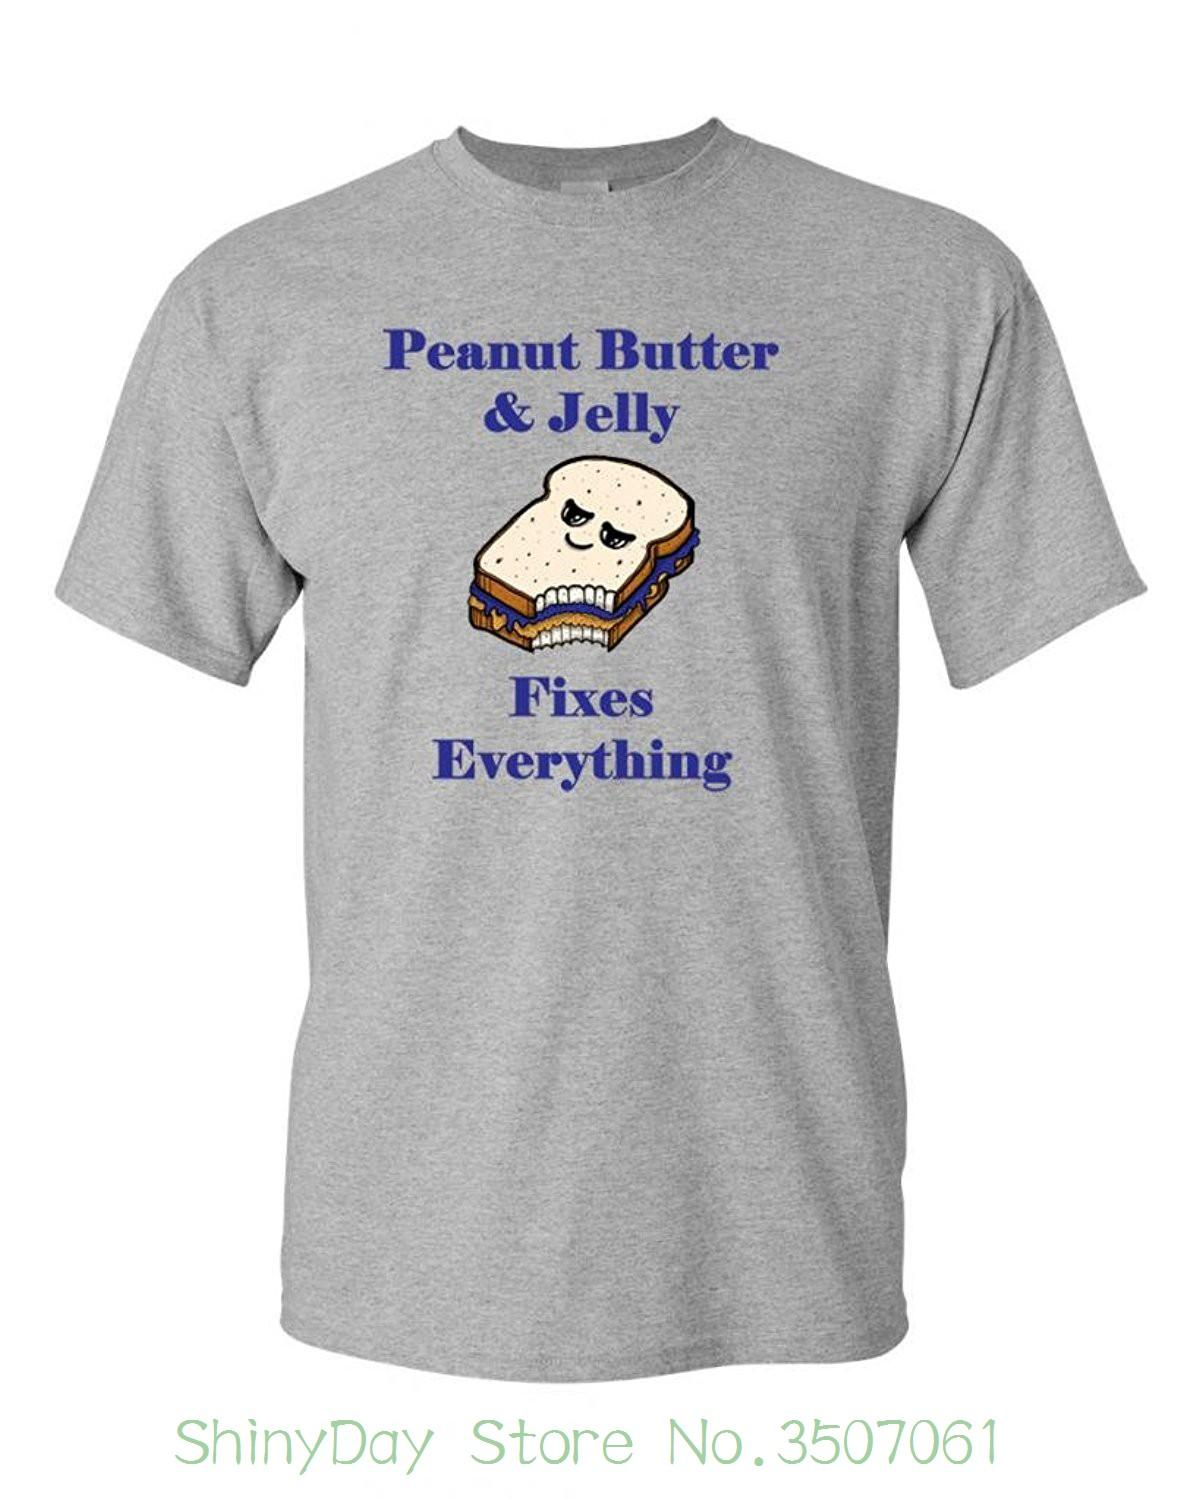 d32478b19 Summer Style Mens T Shirt Peanut Butter And Jelly Fixes Everything Adult Dt T  Shirts Tee Buy Funny T Shirts Online Tee Shirts Funny From Shinydaystore,  ...